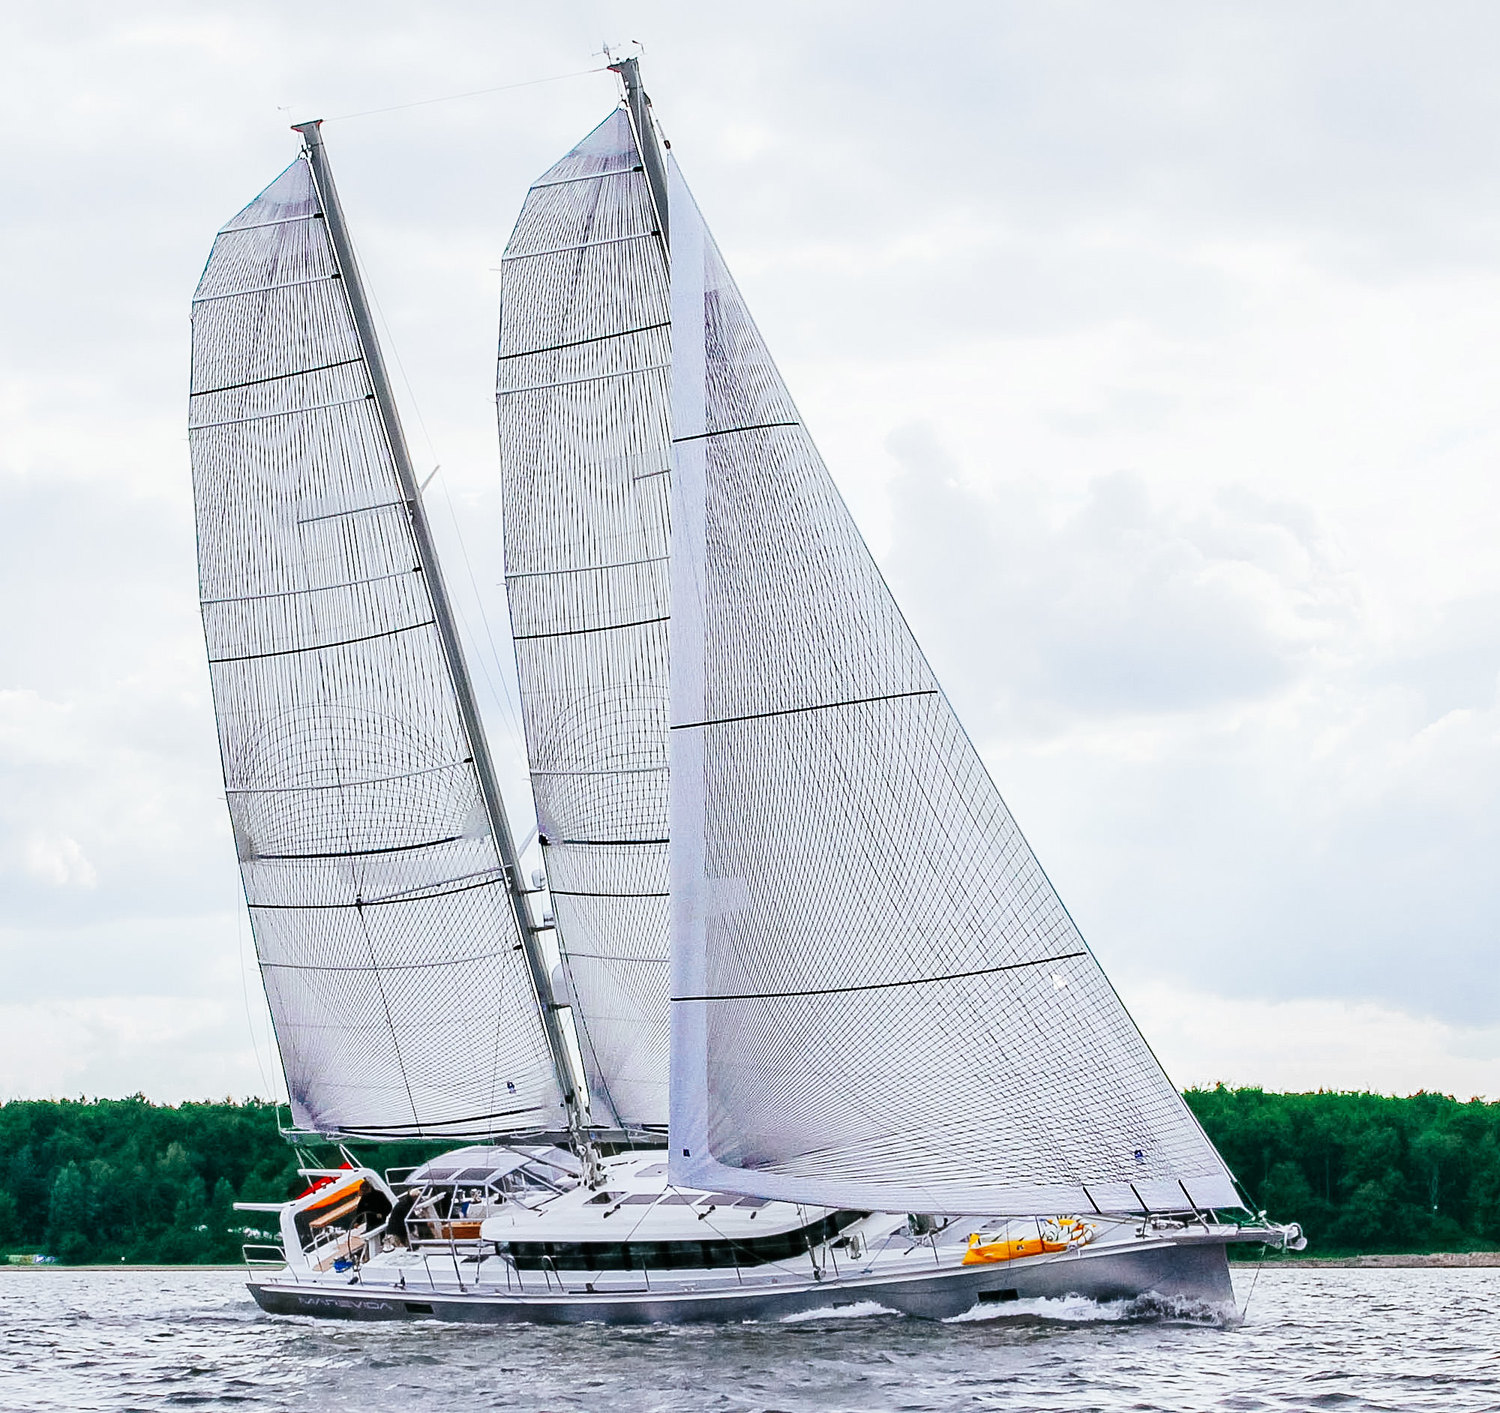 Berckemeyer Yacht Design's 70-foot schooner with full-batten Spectra Tape-Drive mains and a roller/reefing genoa. Photo courtesy     Berckemeyer Yacht Design